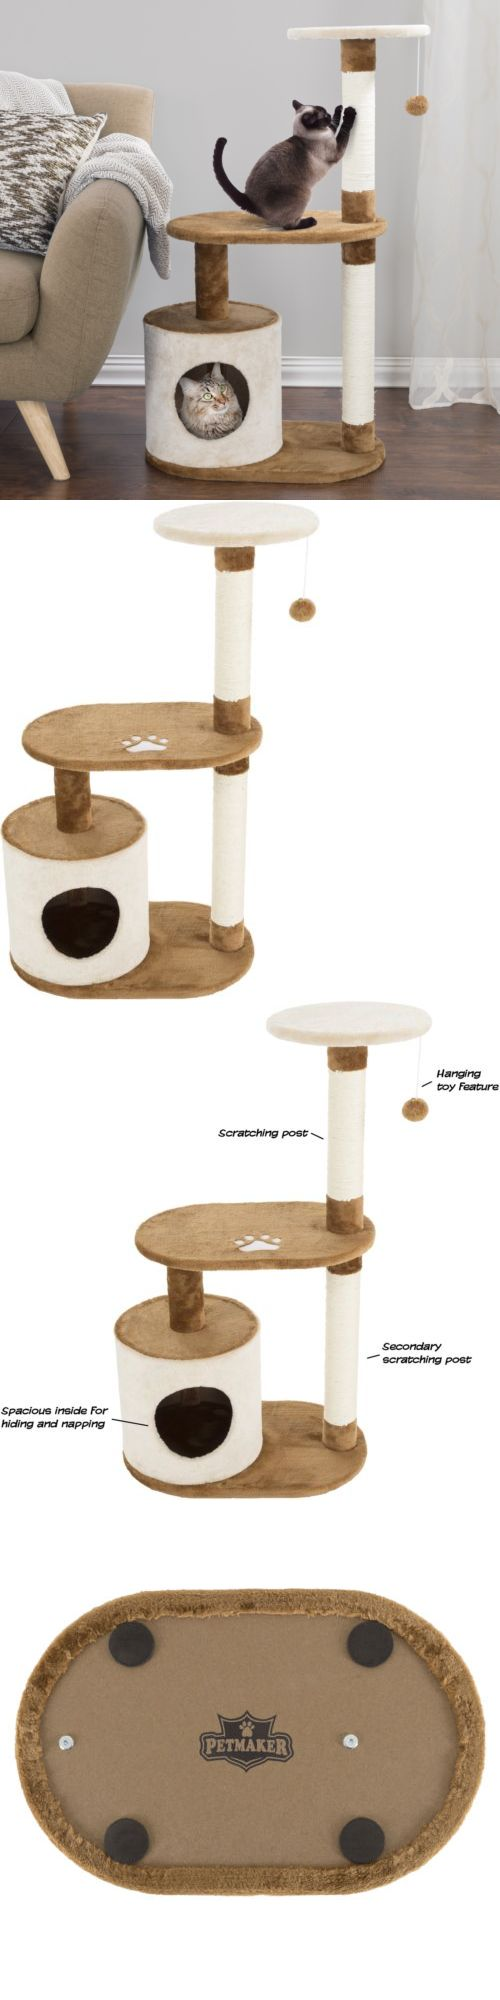 Animals Cats: Cat Tree Condo House Furniture Post Tower Play Scratching Kitty Scratch Kitten -> BUY IT NOW ONLY: $45.99 on eBay!